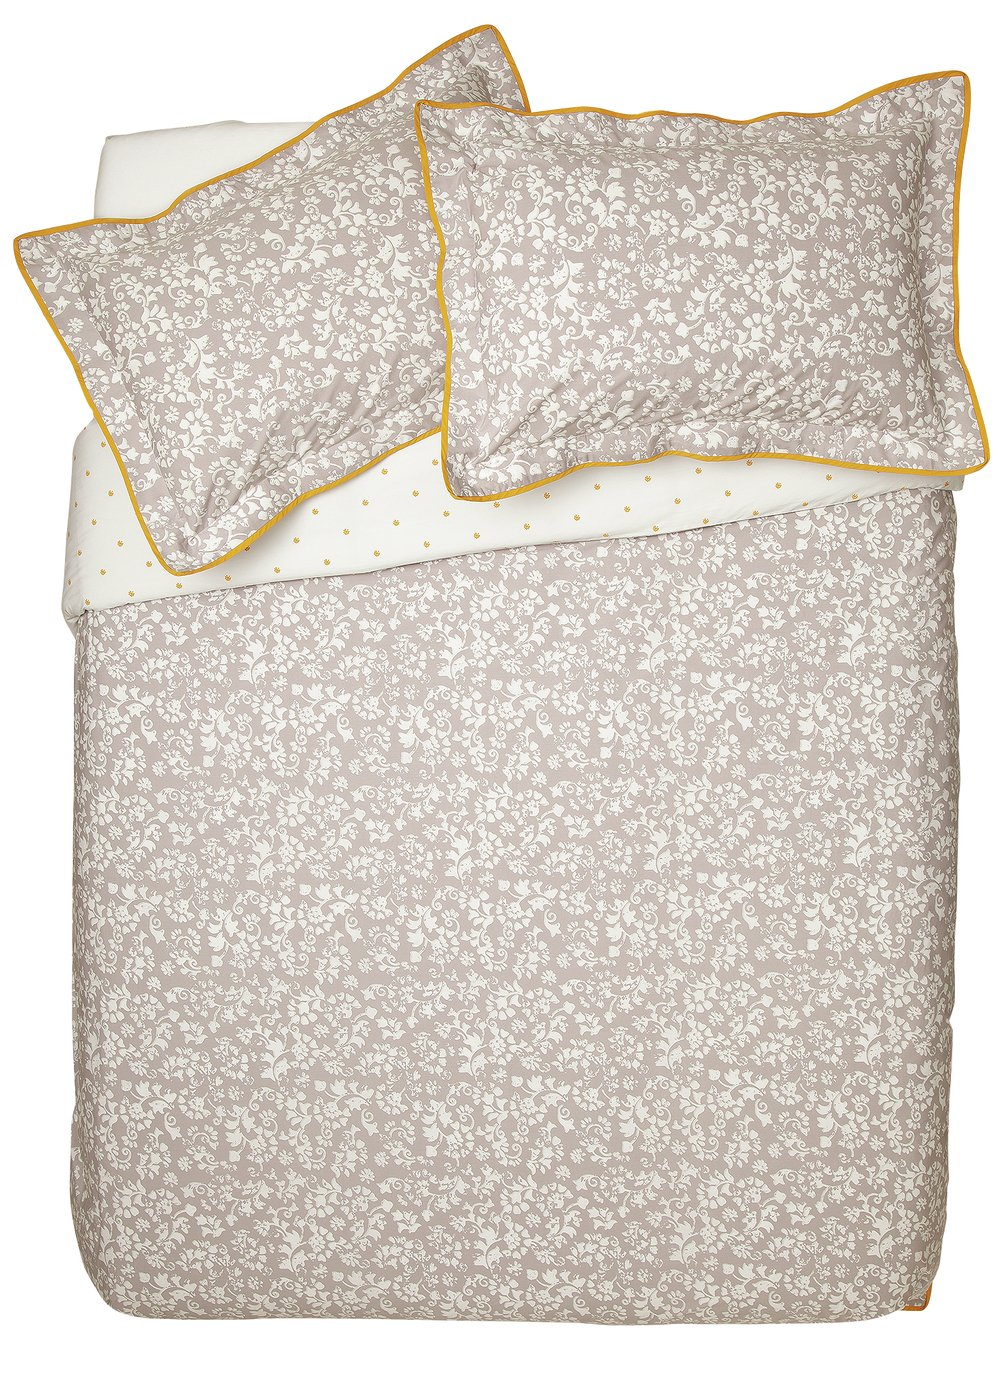 Argos Home Monochrome Floral Bedding Set - Double